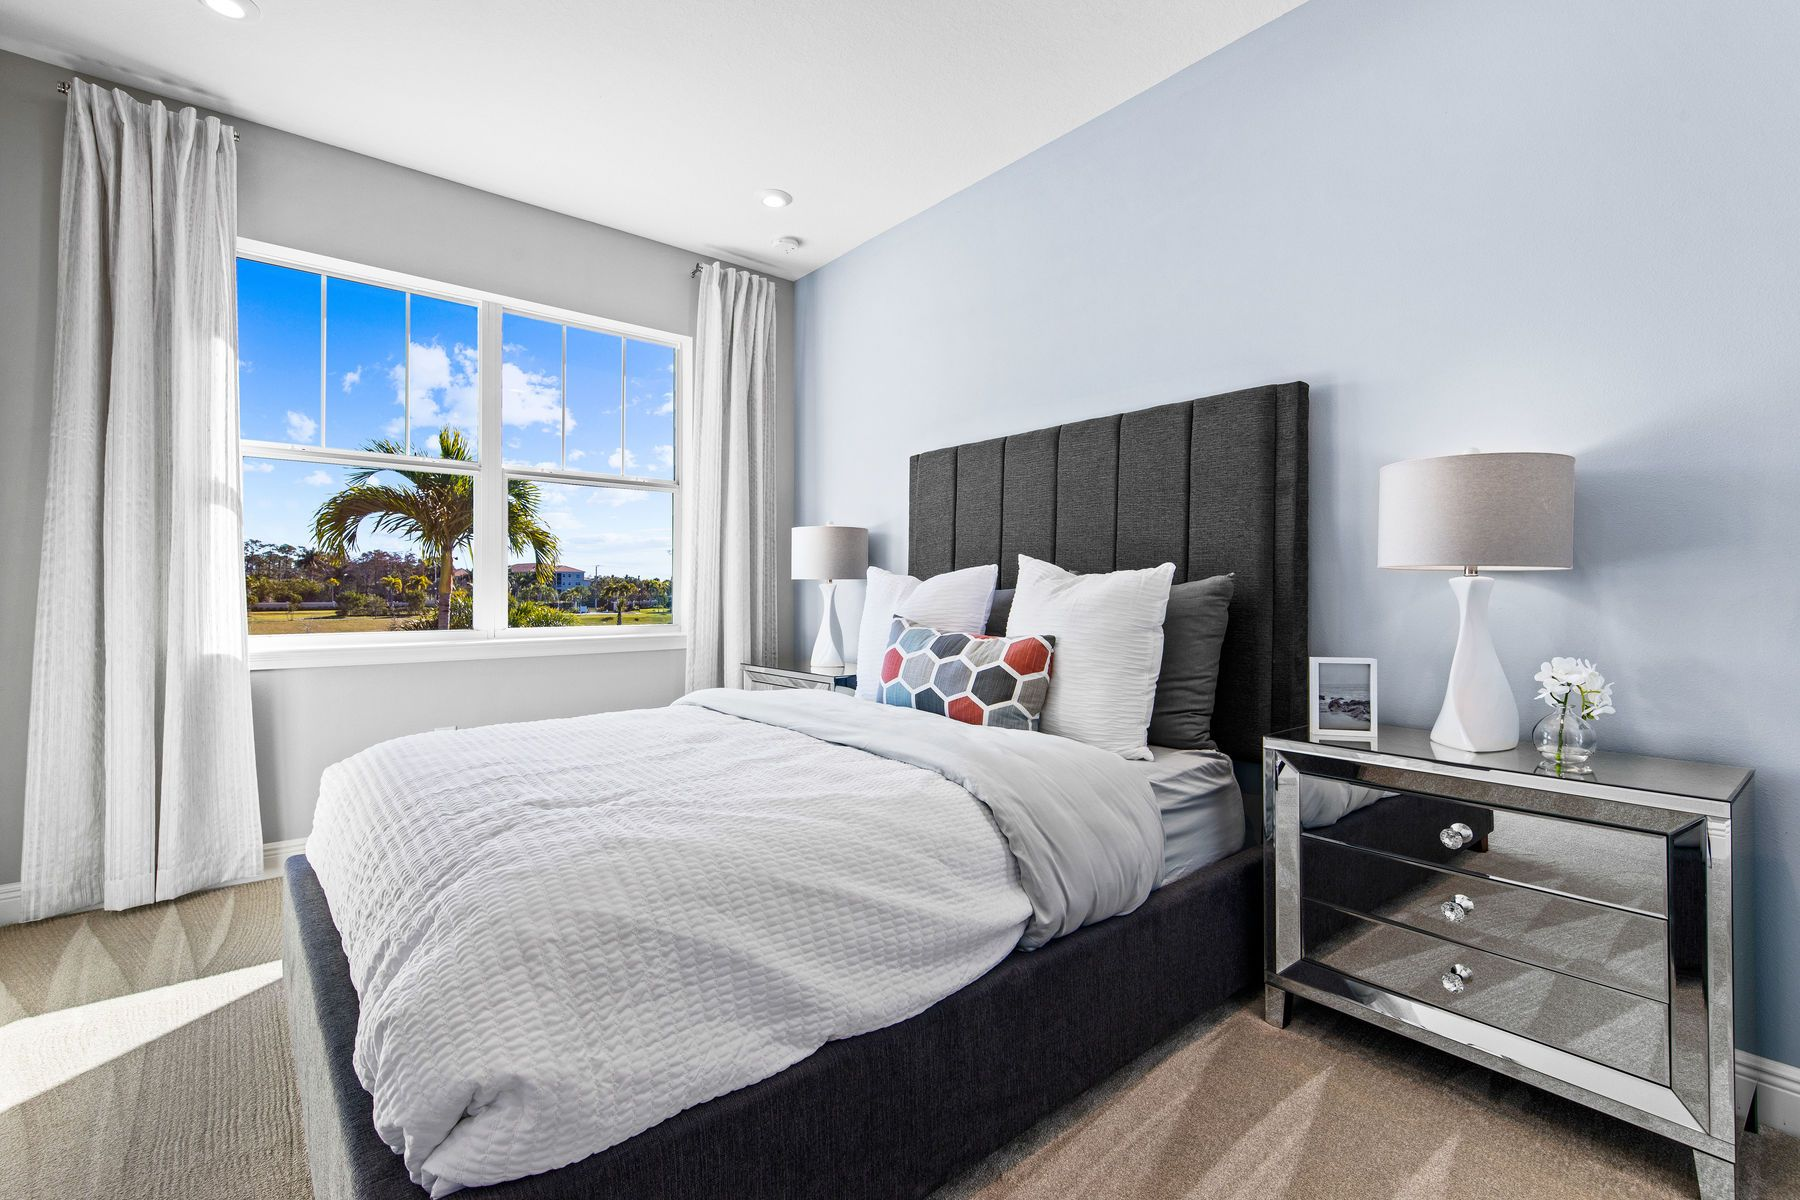 Bedroom featured in the Oceangrove By Mattamy Homes in Naples, FL